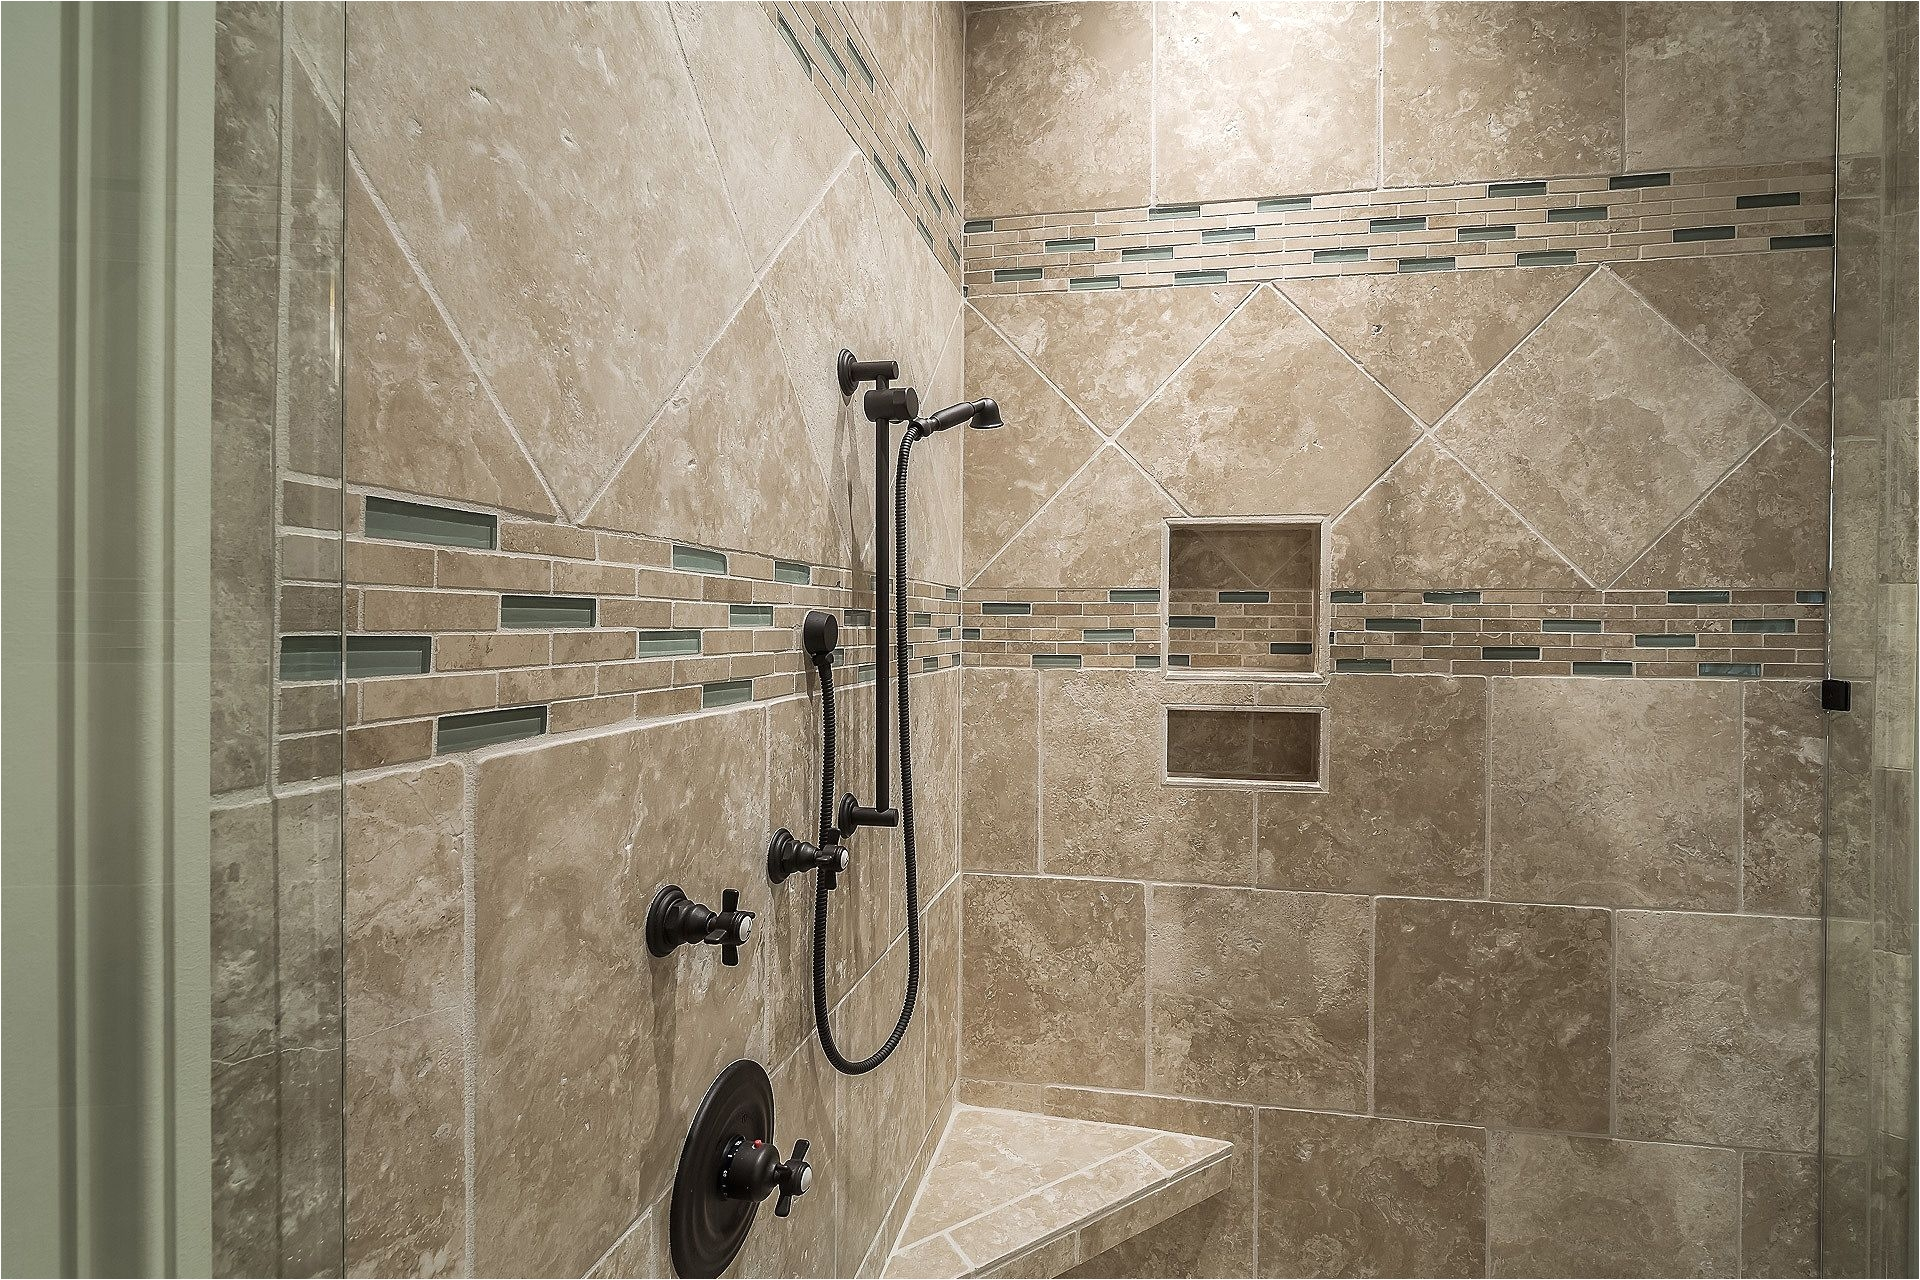 Best Grout for Shower Walls and Floors Grout Sealer Basics and Application Guide